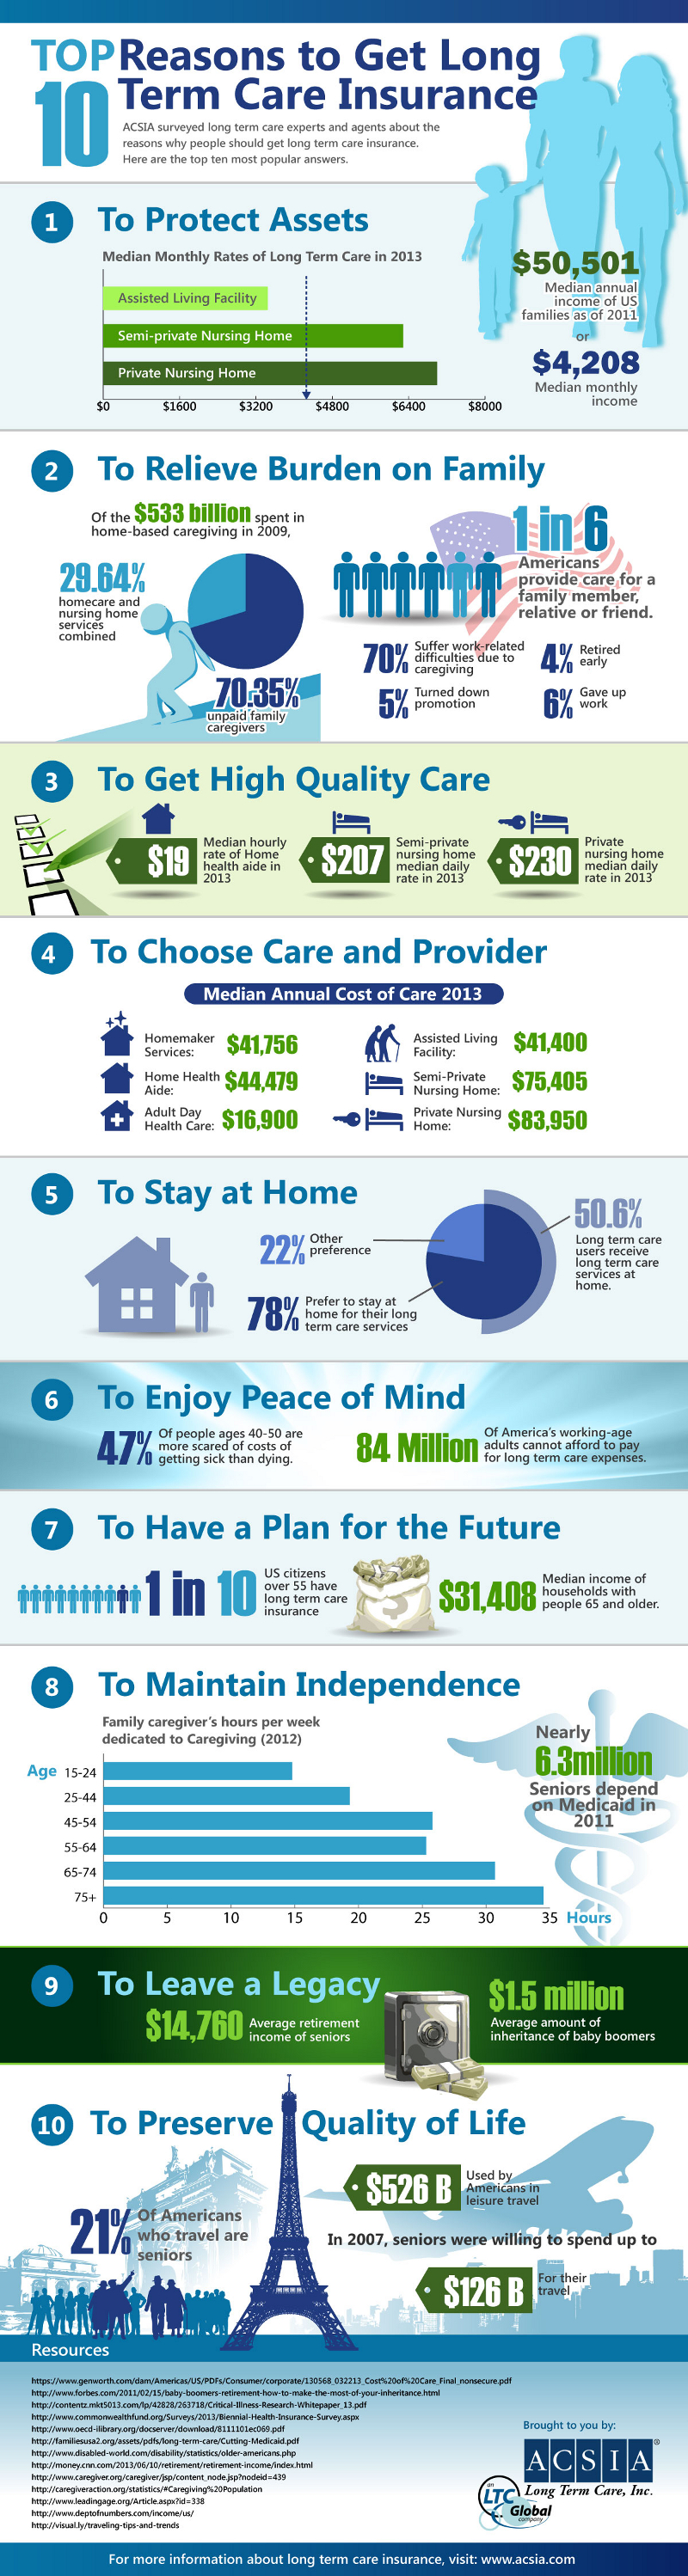 Benefits of Long Term Care Insurance